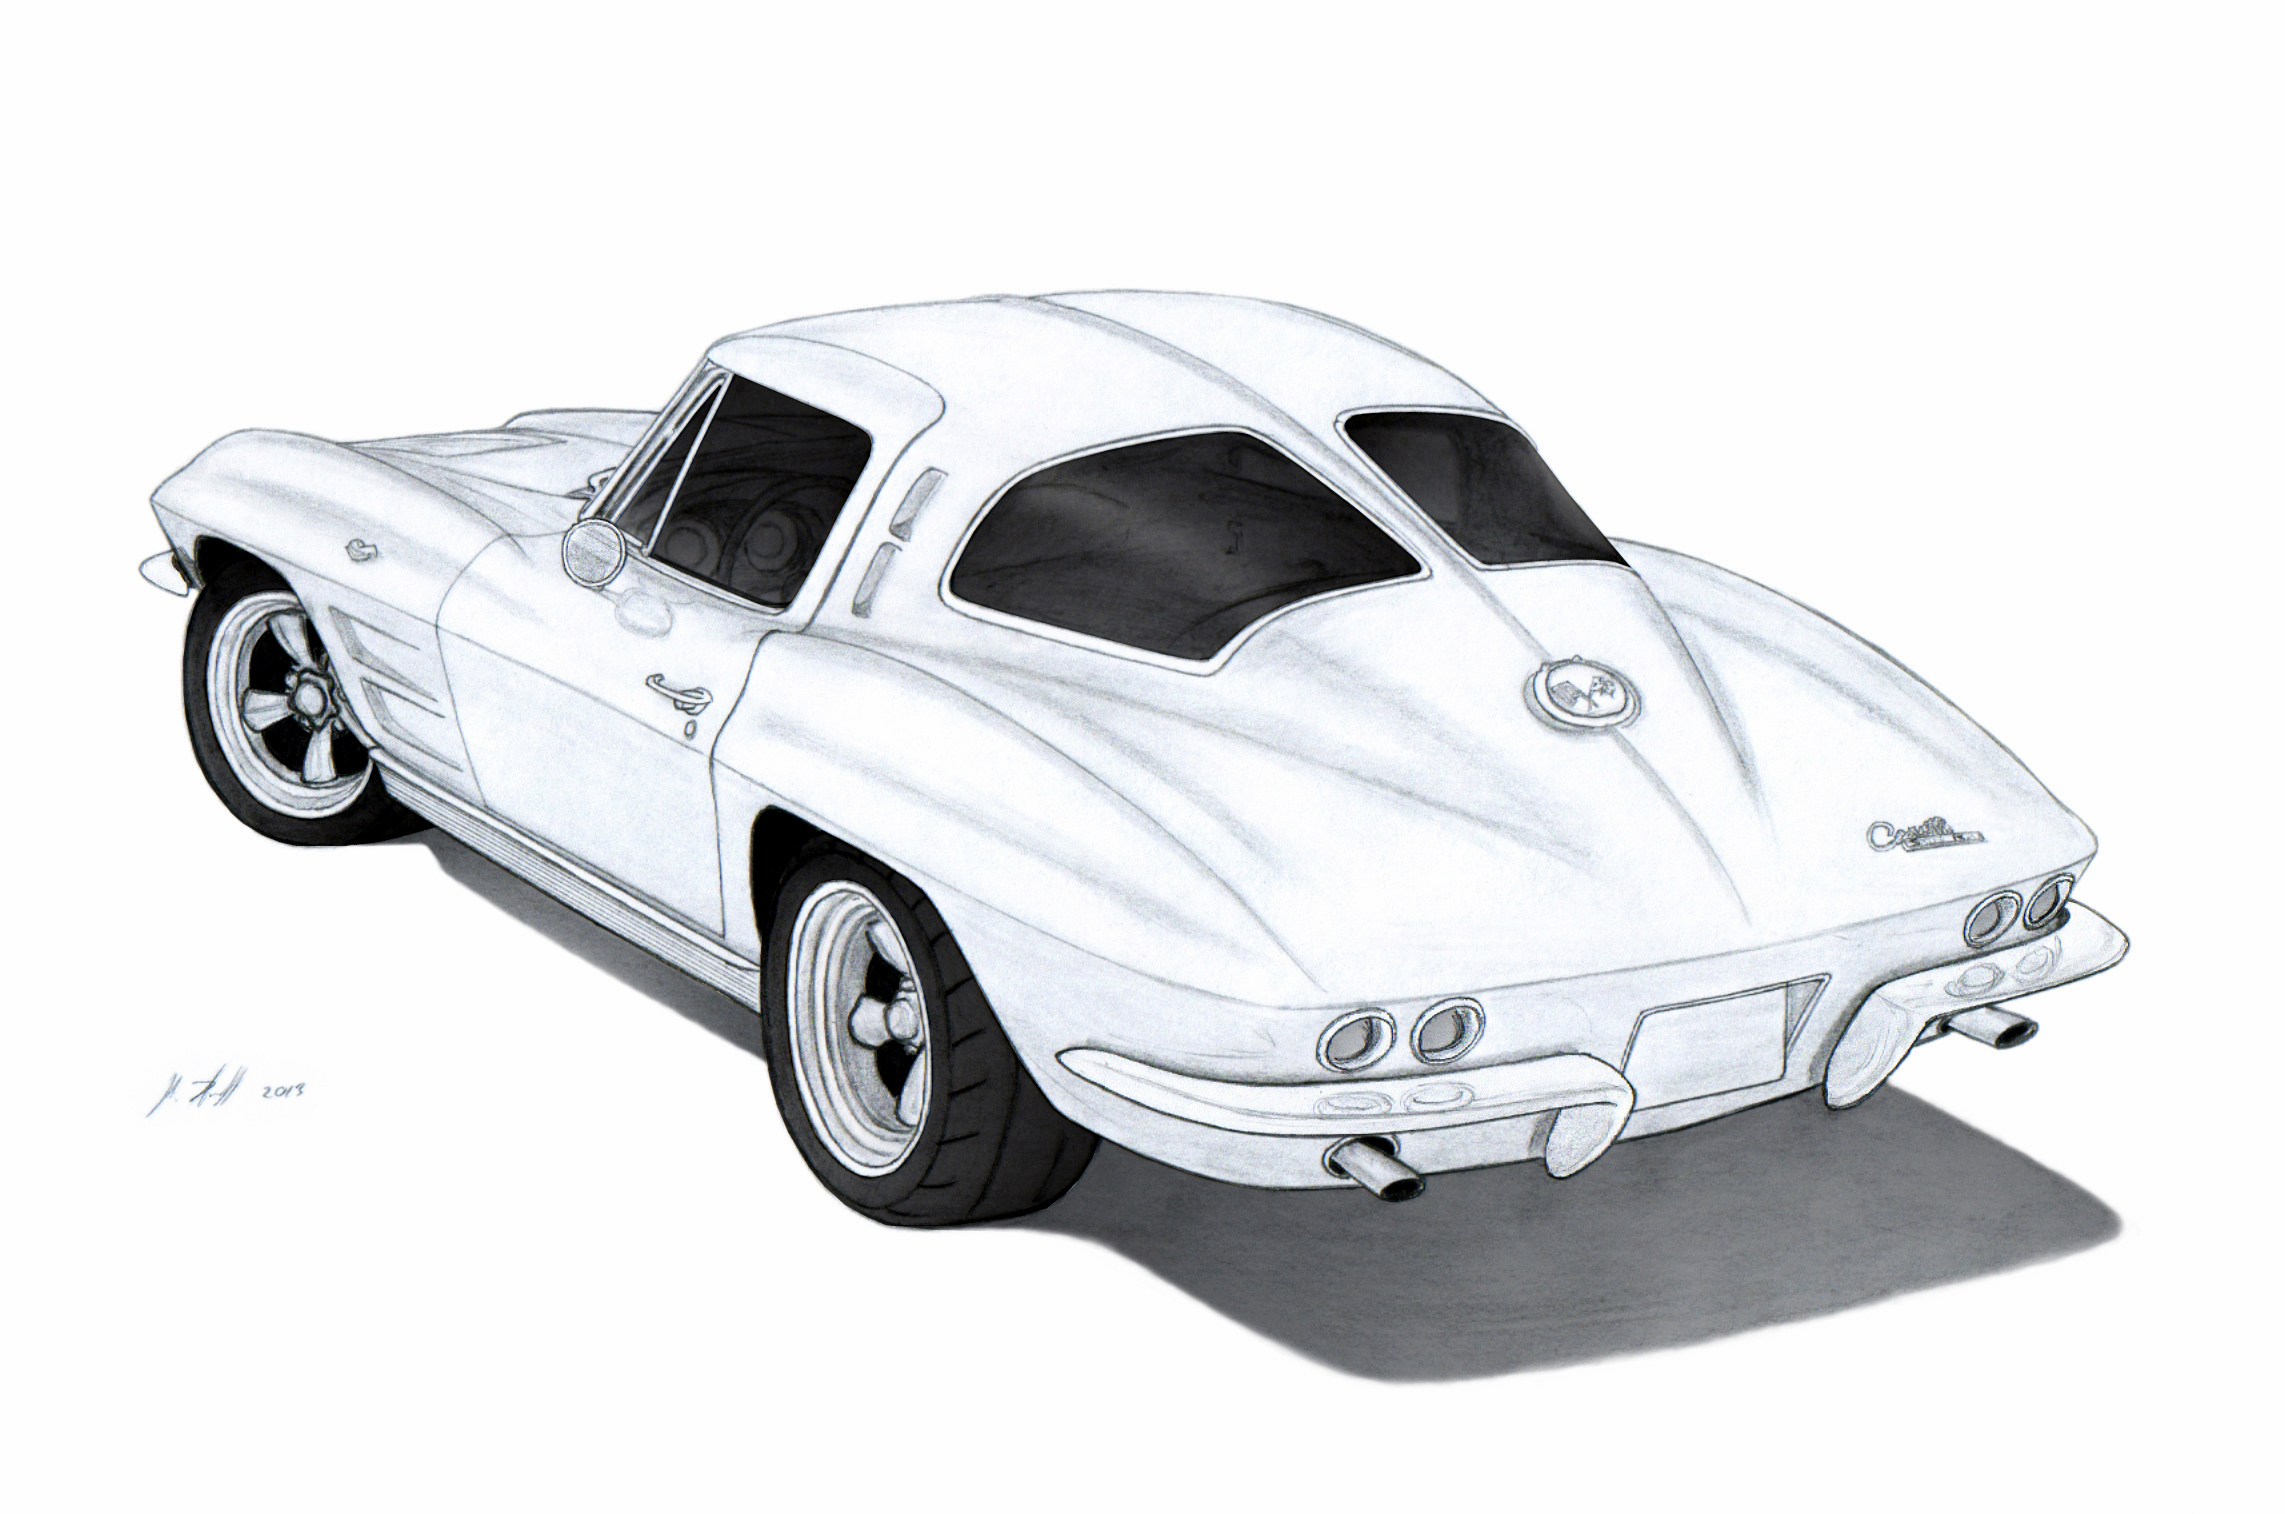 Drawn vehicle corvette By (C2) by Chevrolet (C2)